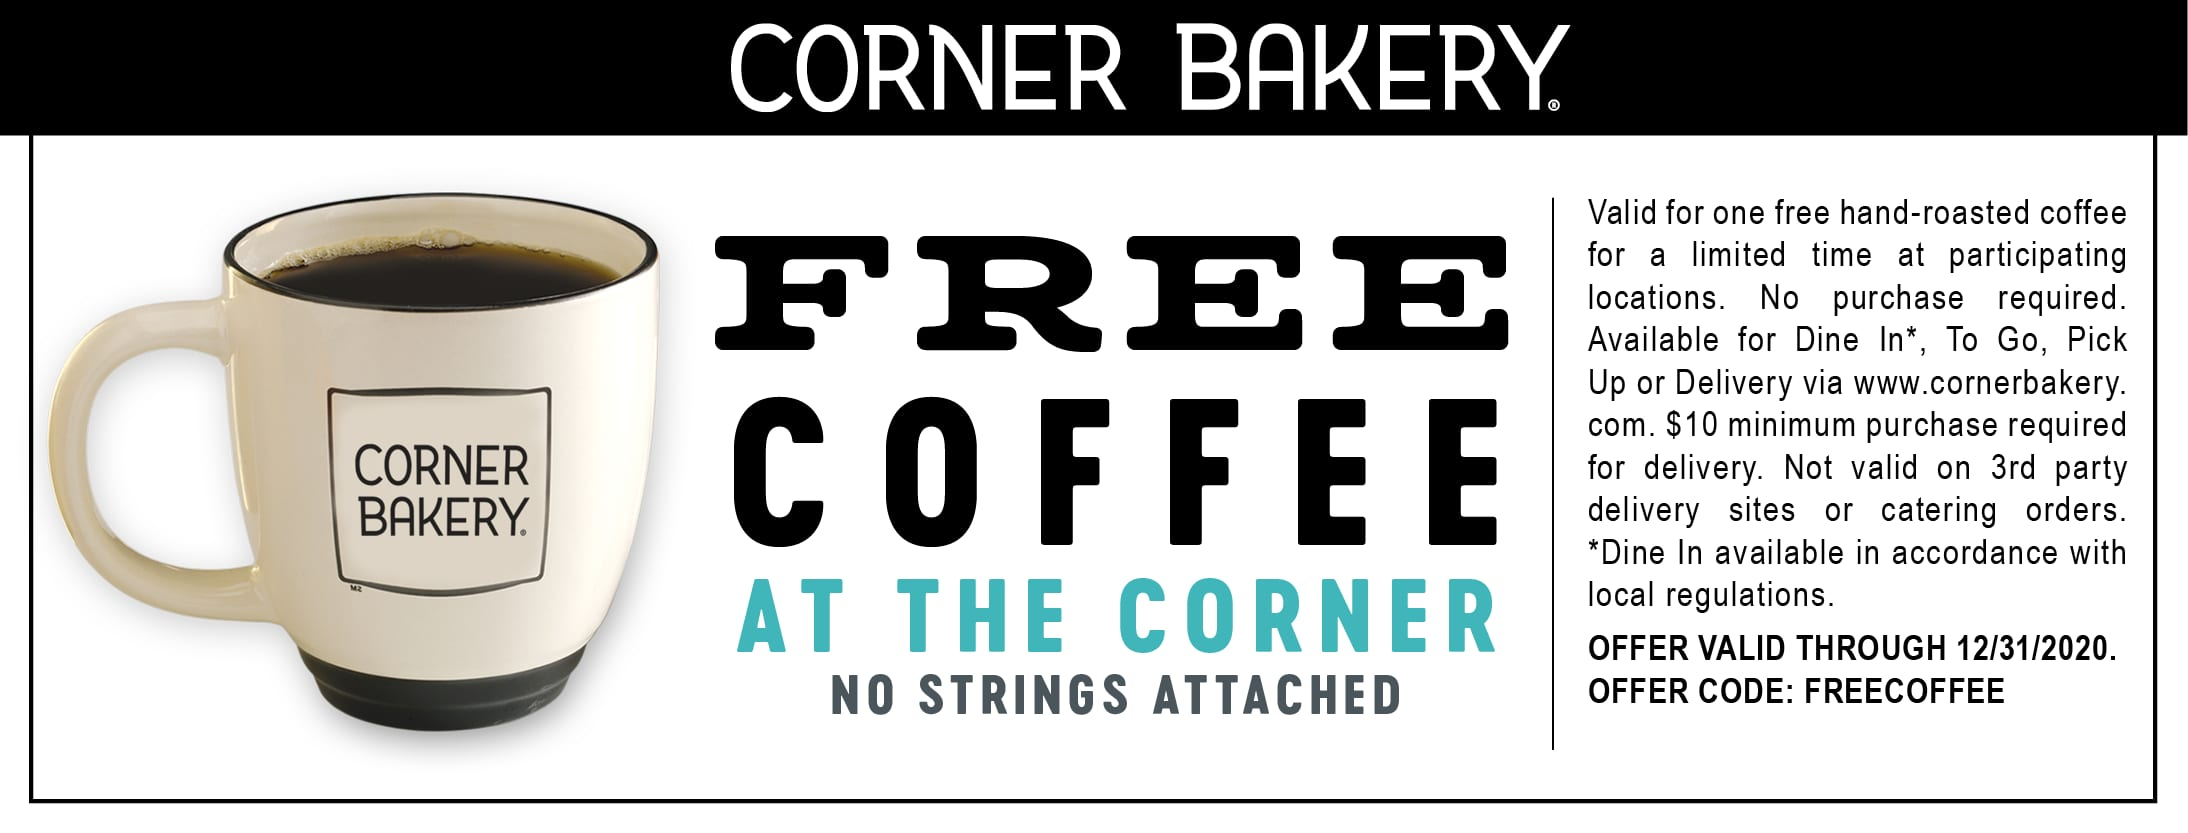 Corner Bakery - Free coffee until the end of the year - no purchase necessary.